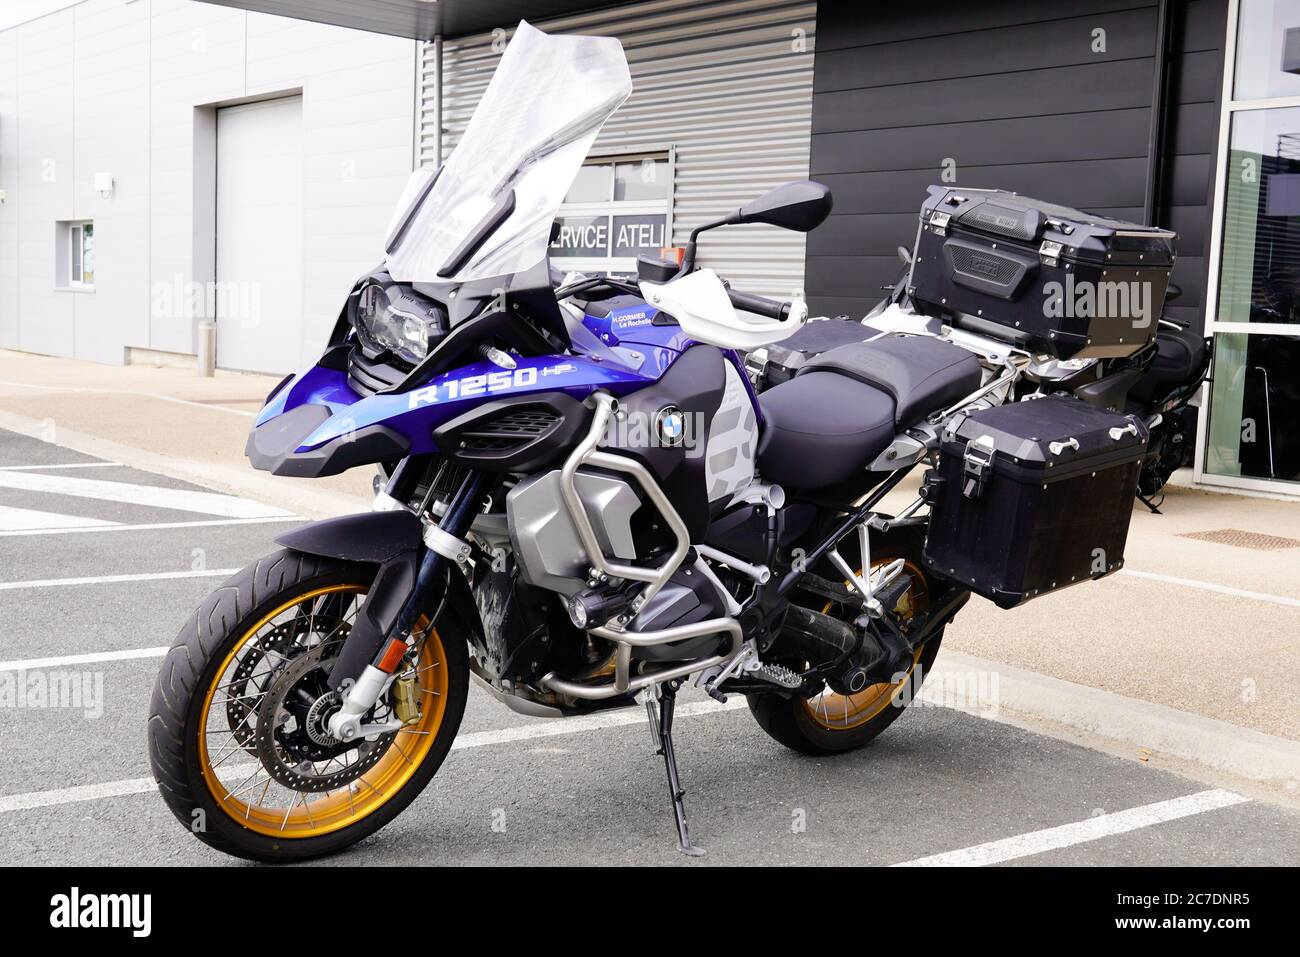 Touring By Motorcycle High Resolution Stock Photography And Images Alamy